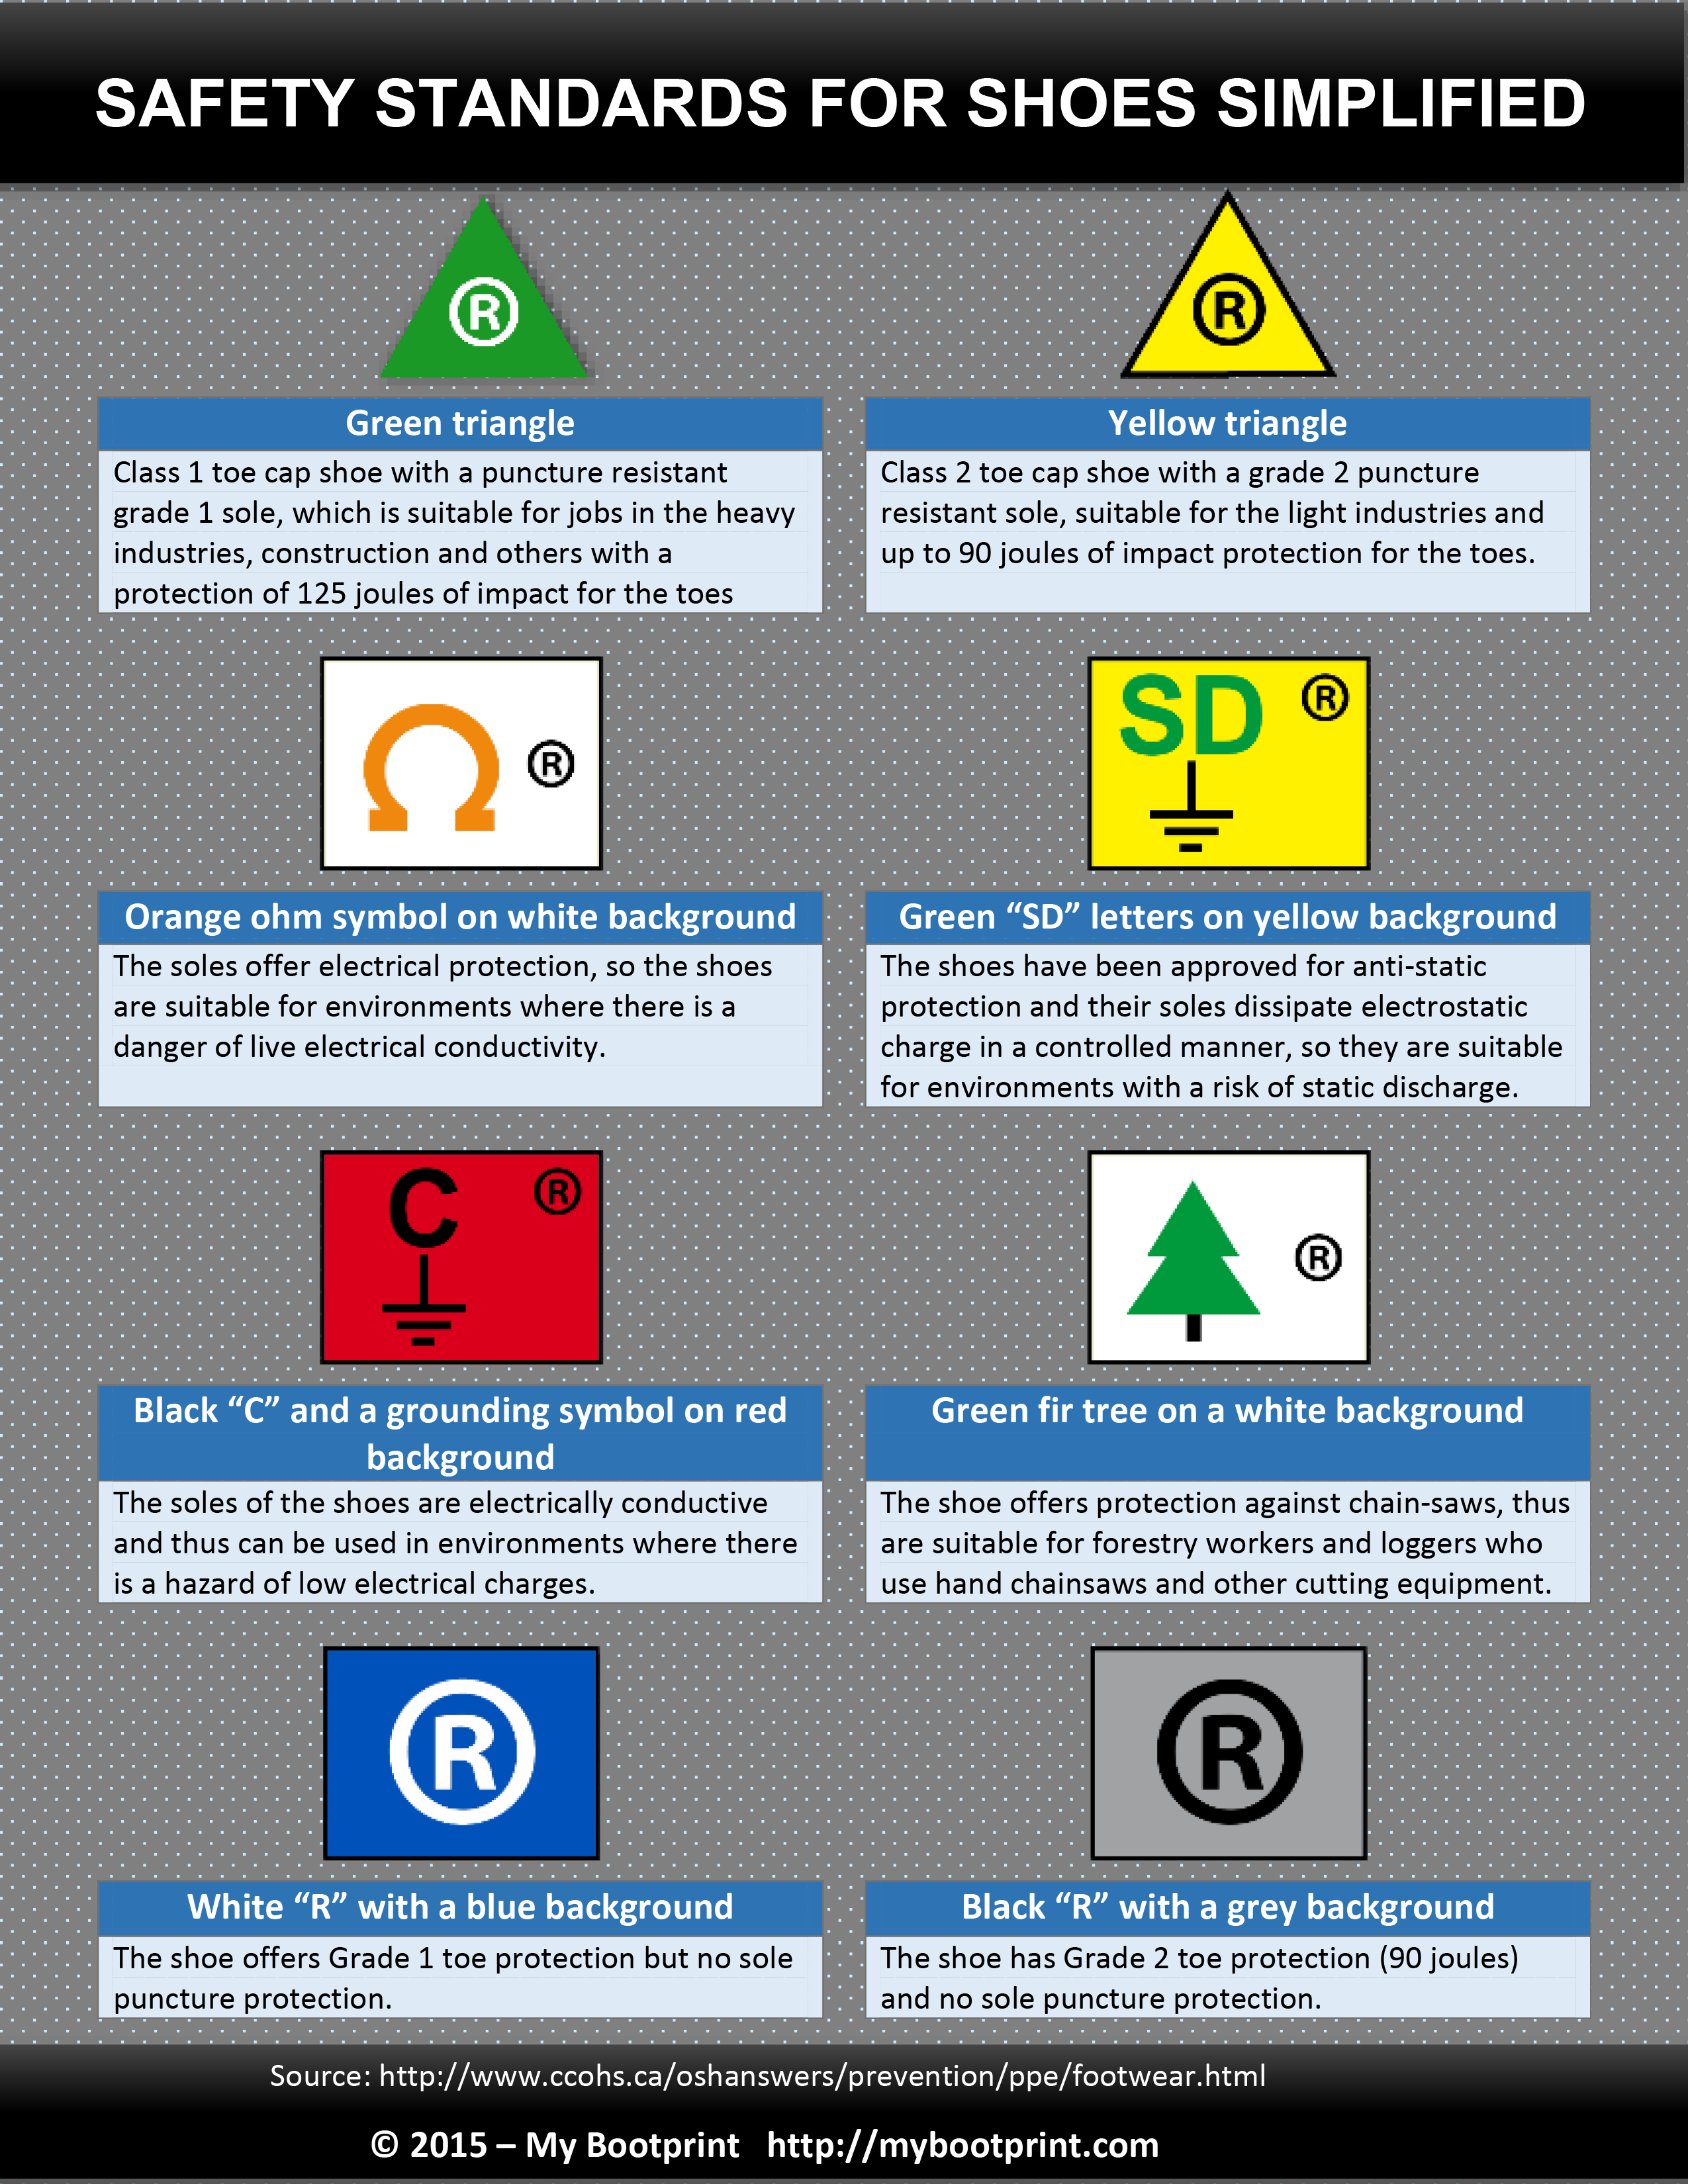 Shoes and safety symbols simplified. Check out this